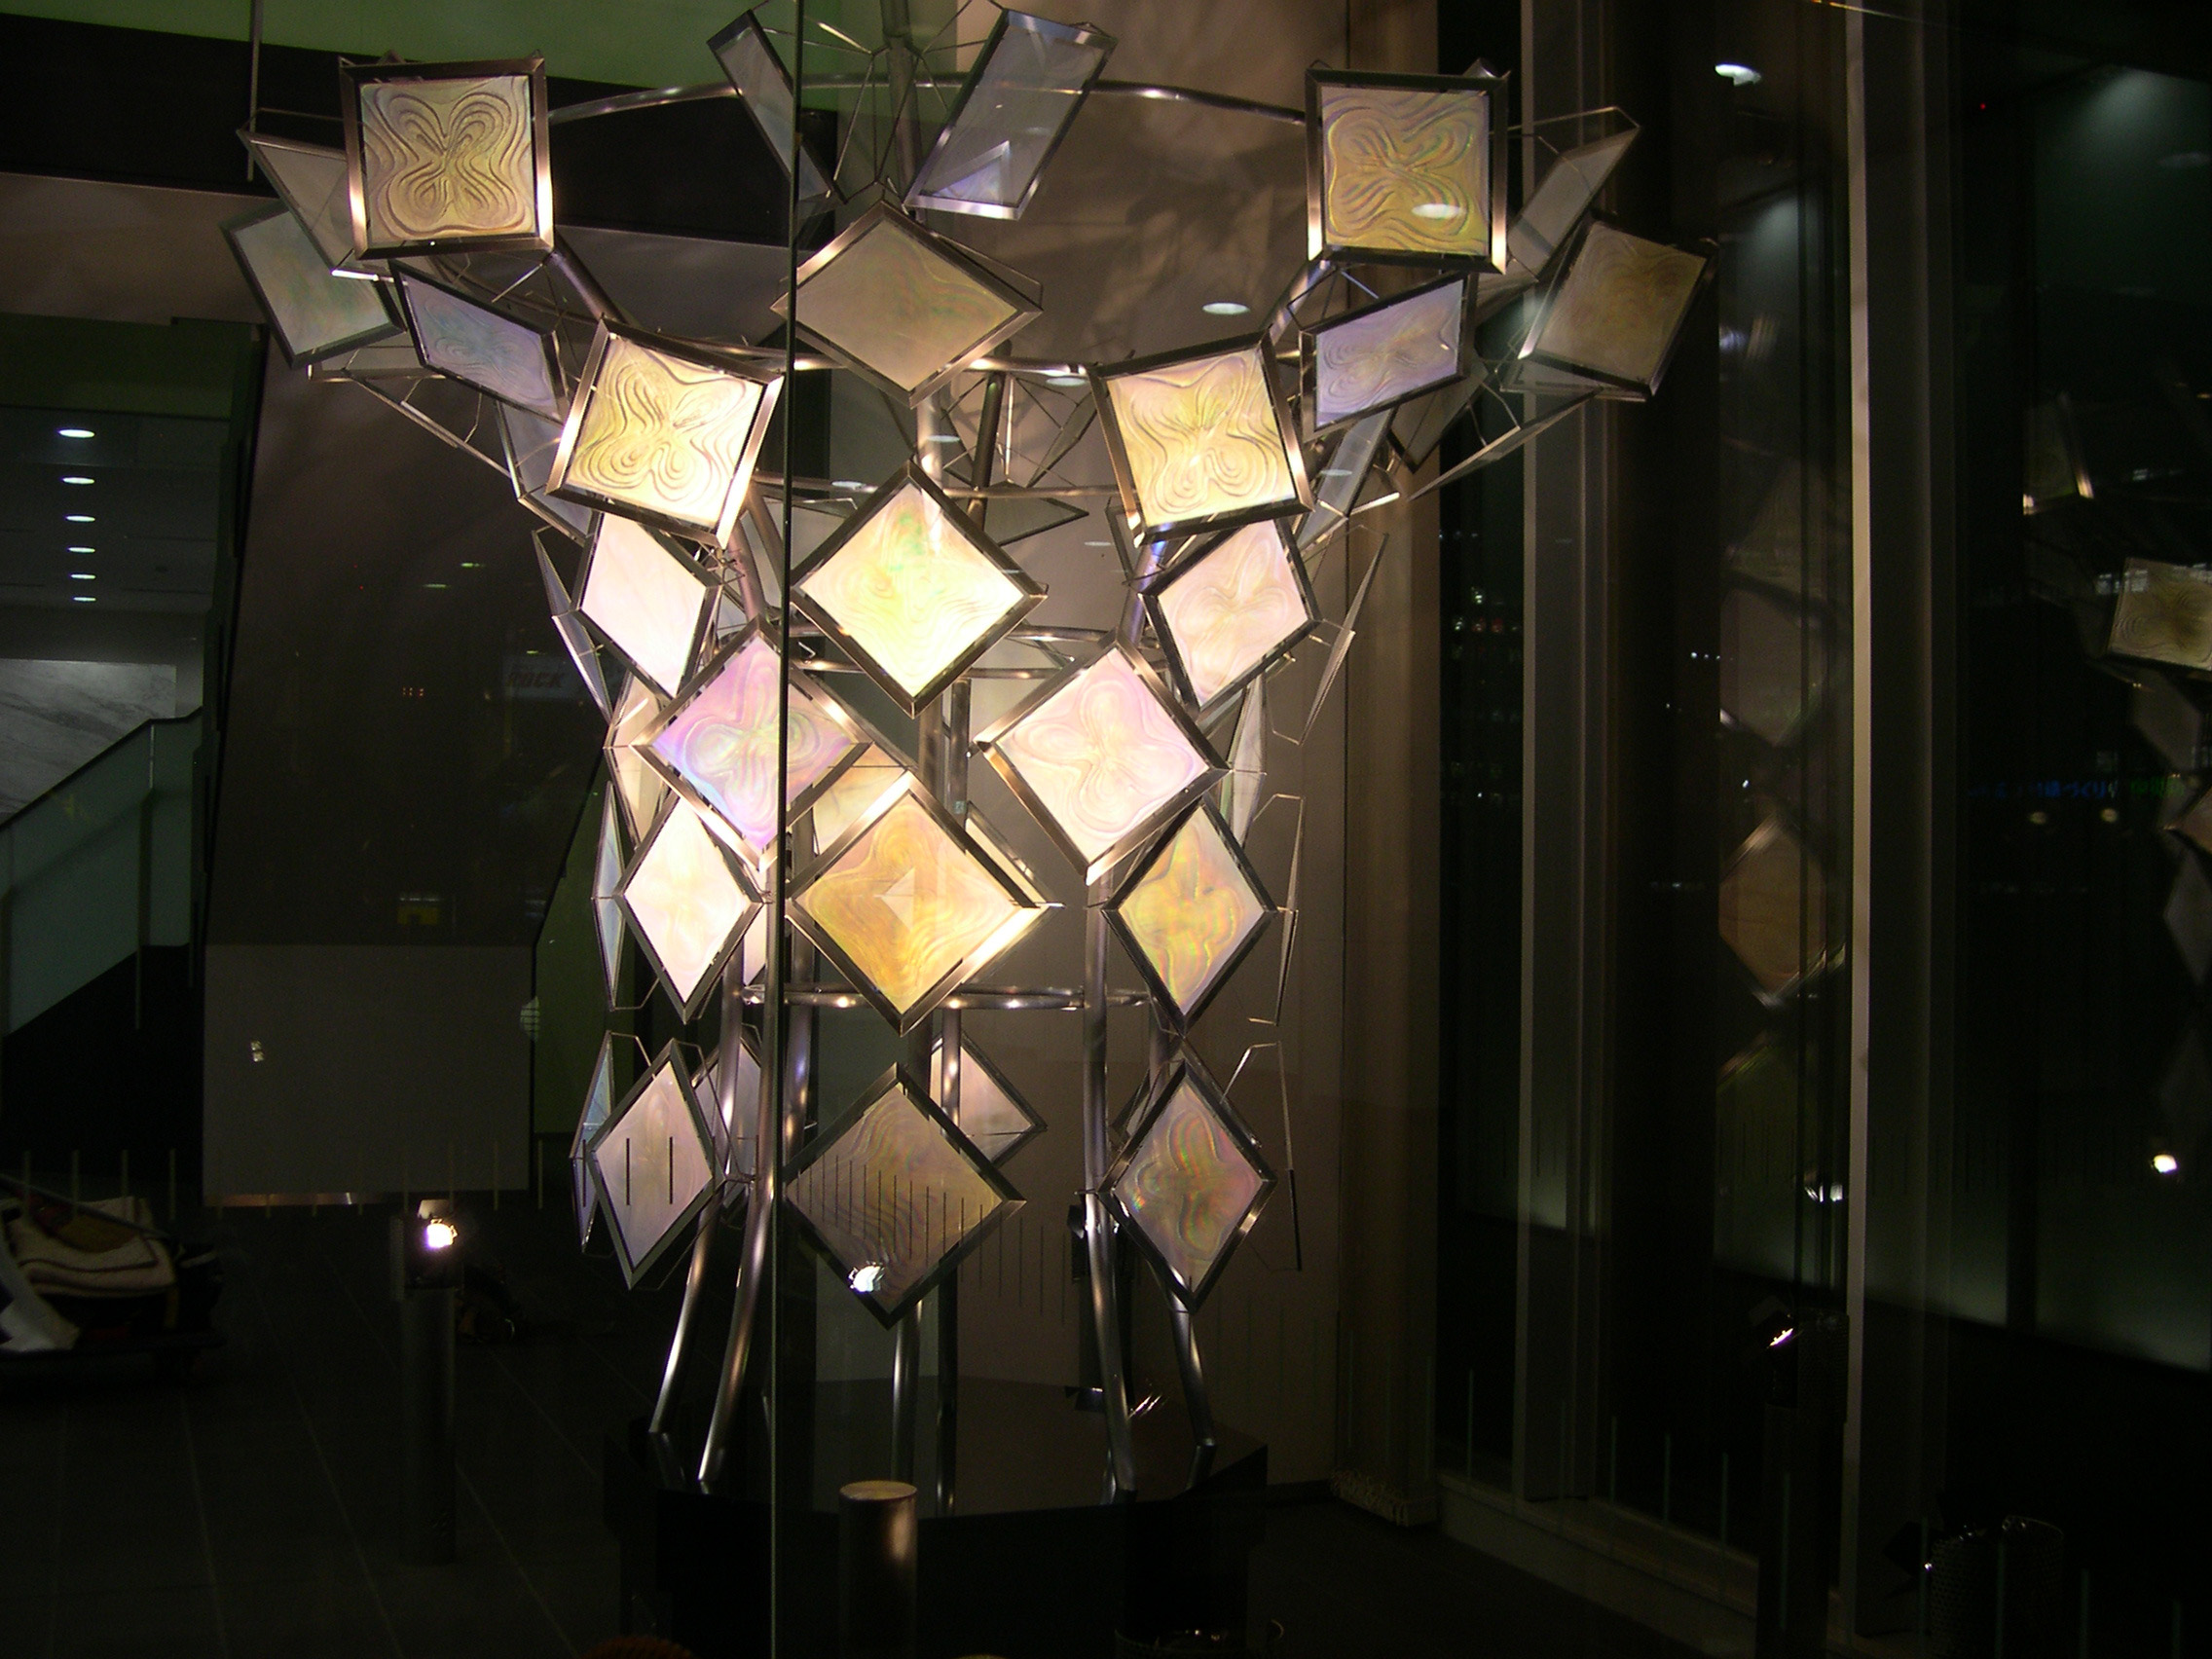 Setsuko Ishii Gift from Future optical sculpture with 64 hologram panels